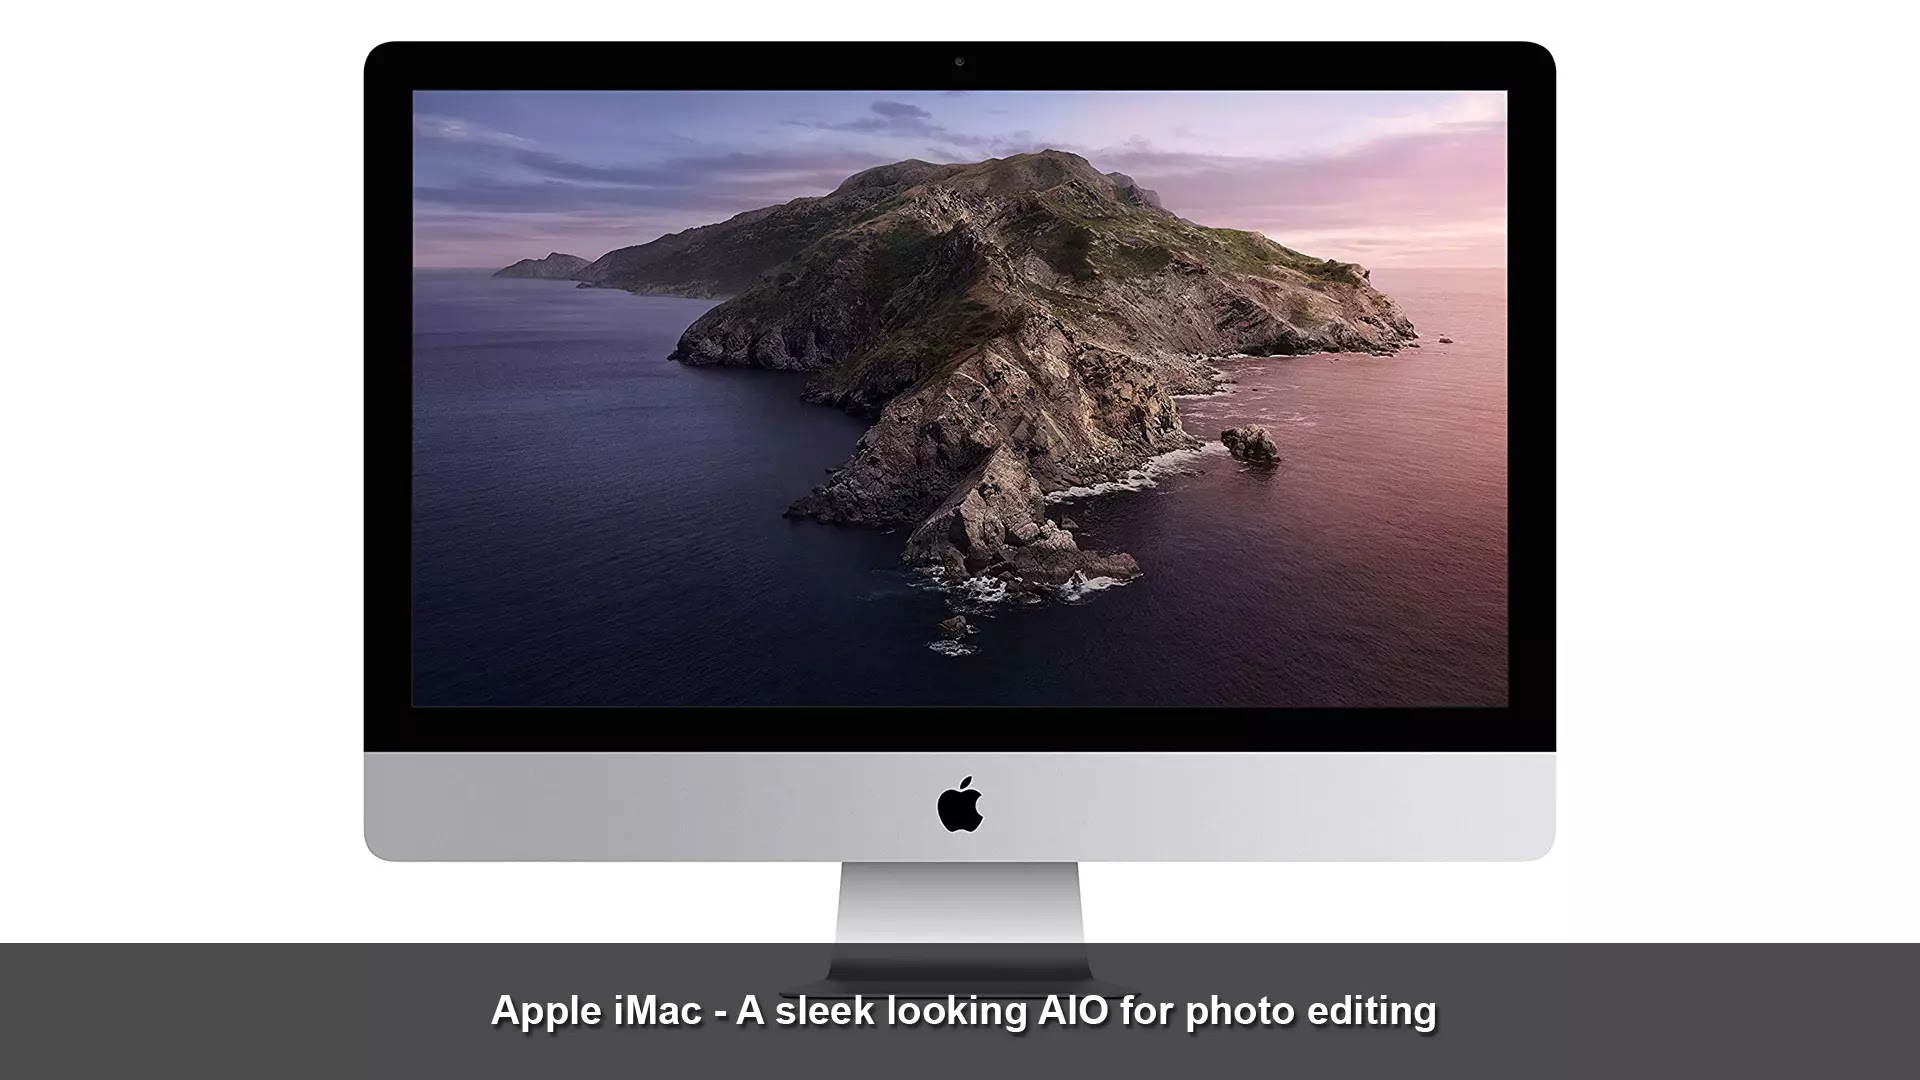 Apple iMac - a sleek looking AIO for photo editing